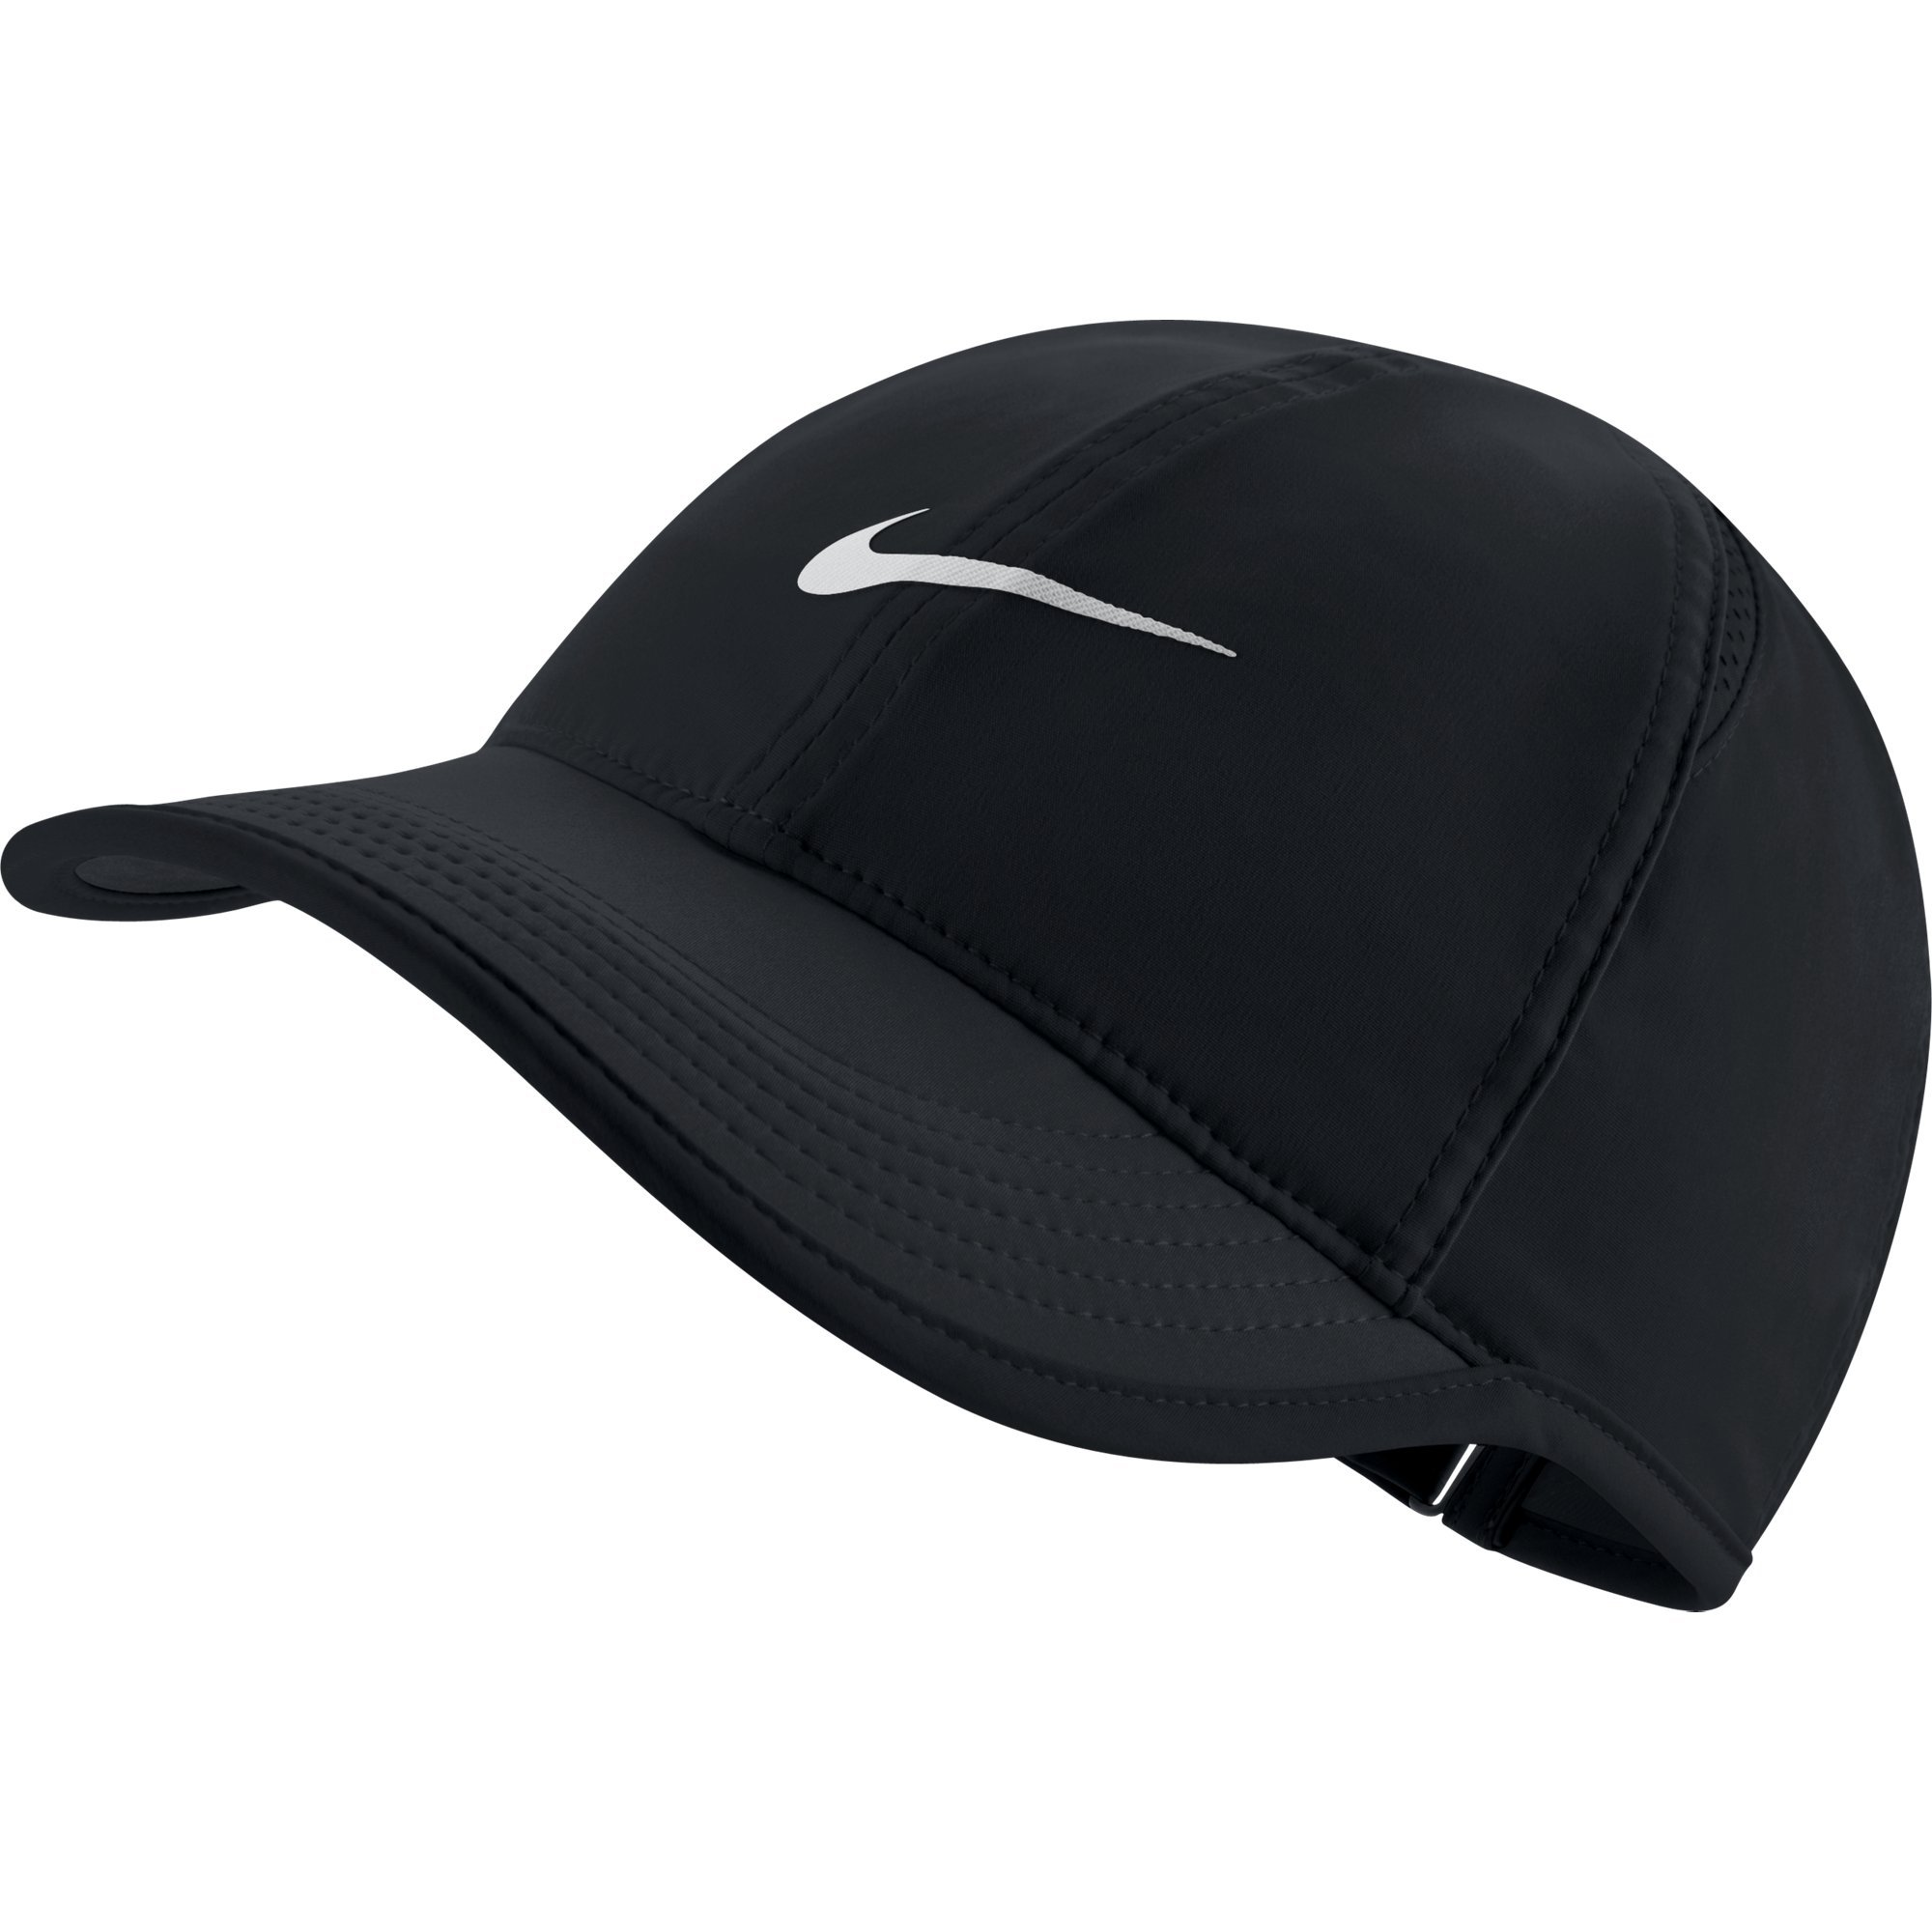 NIKE Women's AeroBill Featherlight Tennis Cap, Black/Black/White, One Size